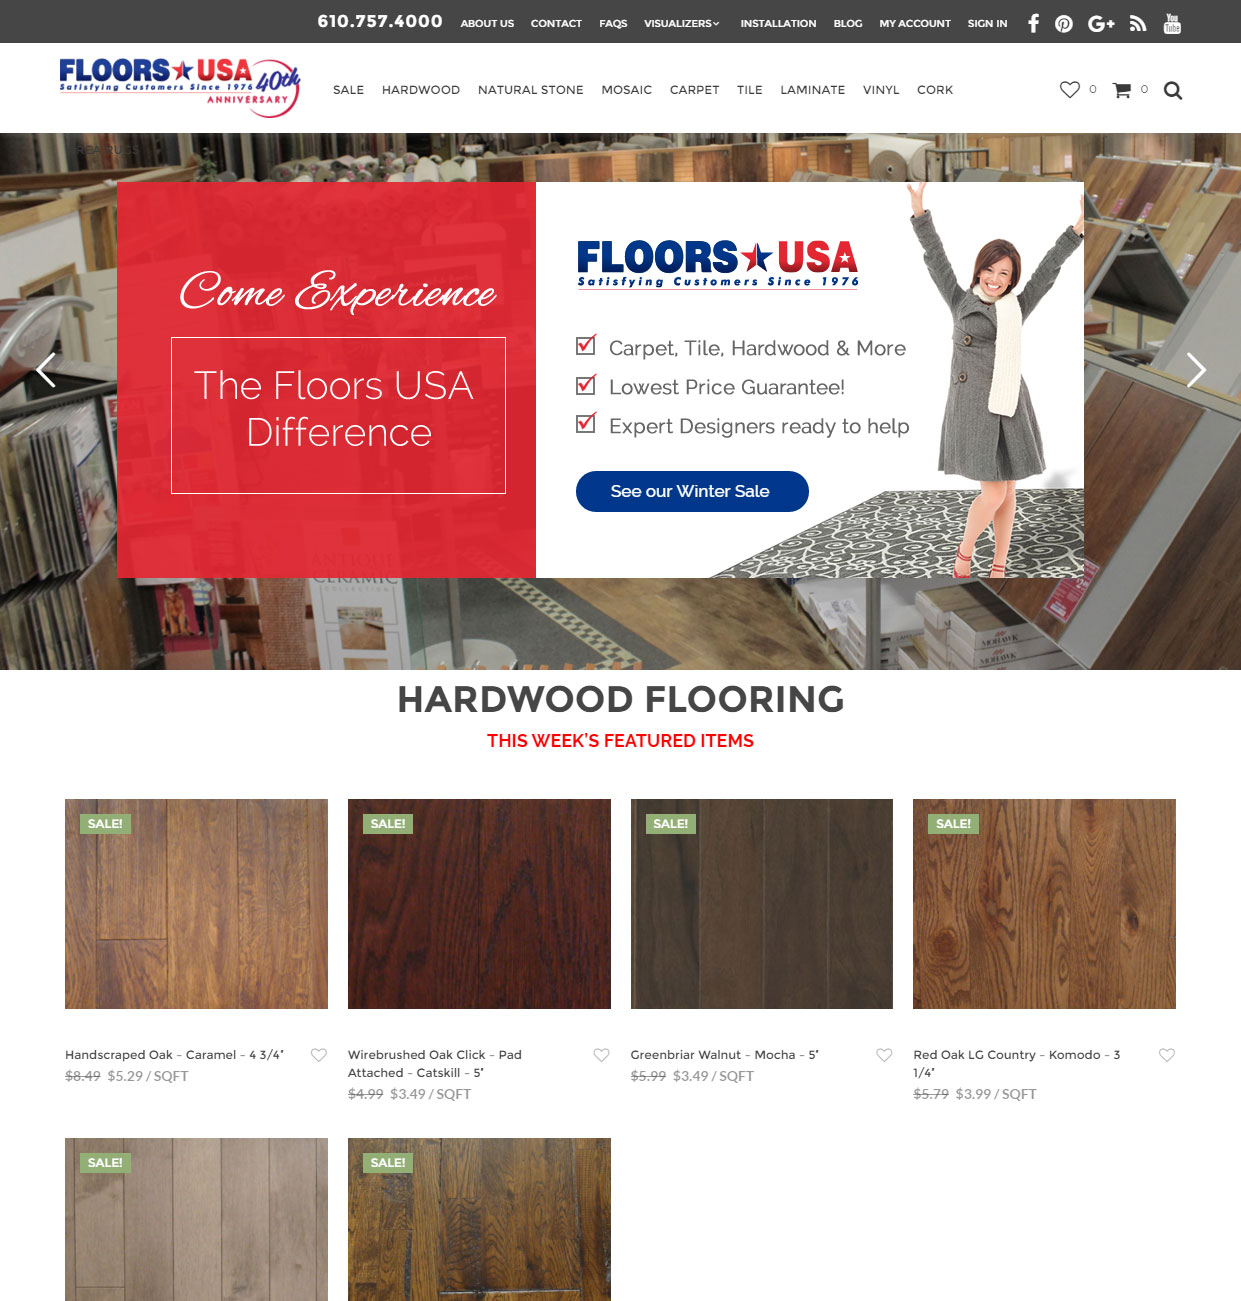 Custom ecommerce wordpress site for flooring store in philadelphia